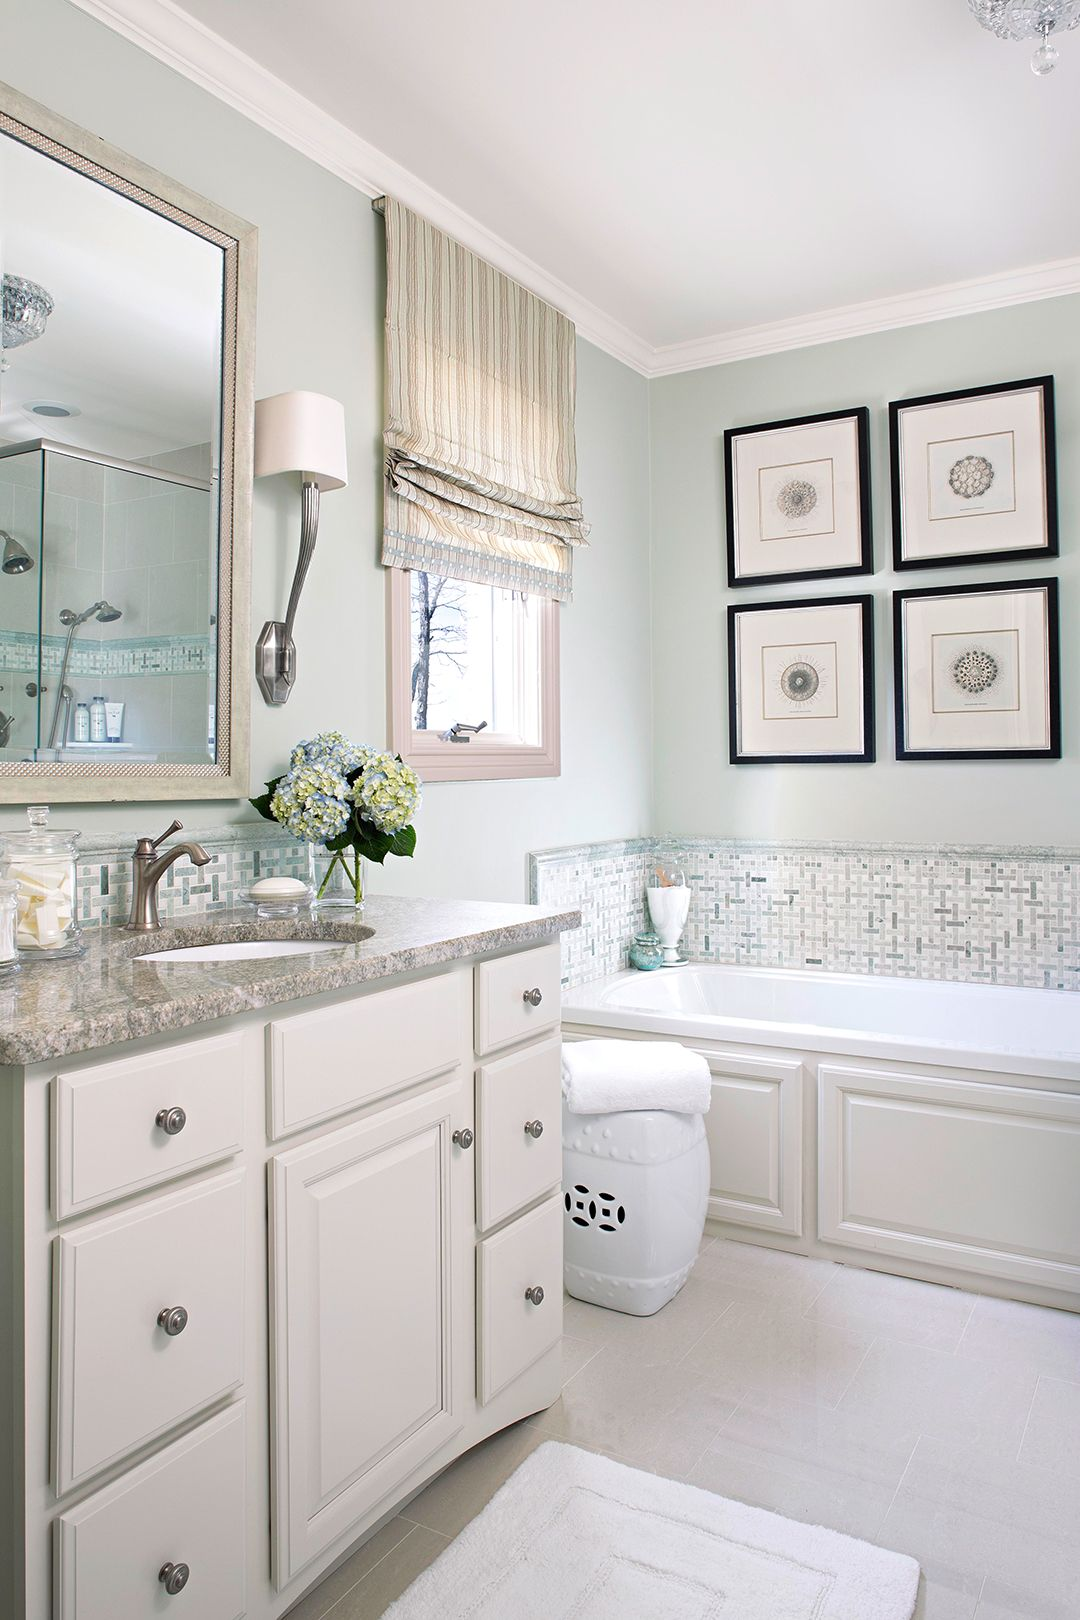 12 Popular Bathroom Paint Colors Our Editors Swear By Green Bathroom Best Bathroom Paint Colors Small Bathroom Remodel,Room Clothes Organizer Ideas